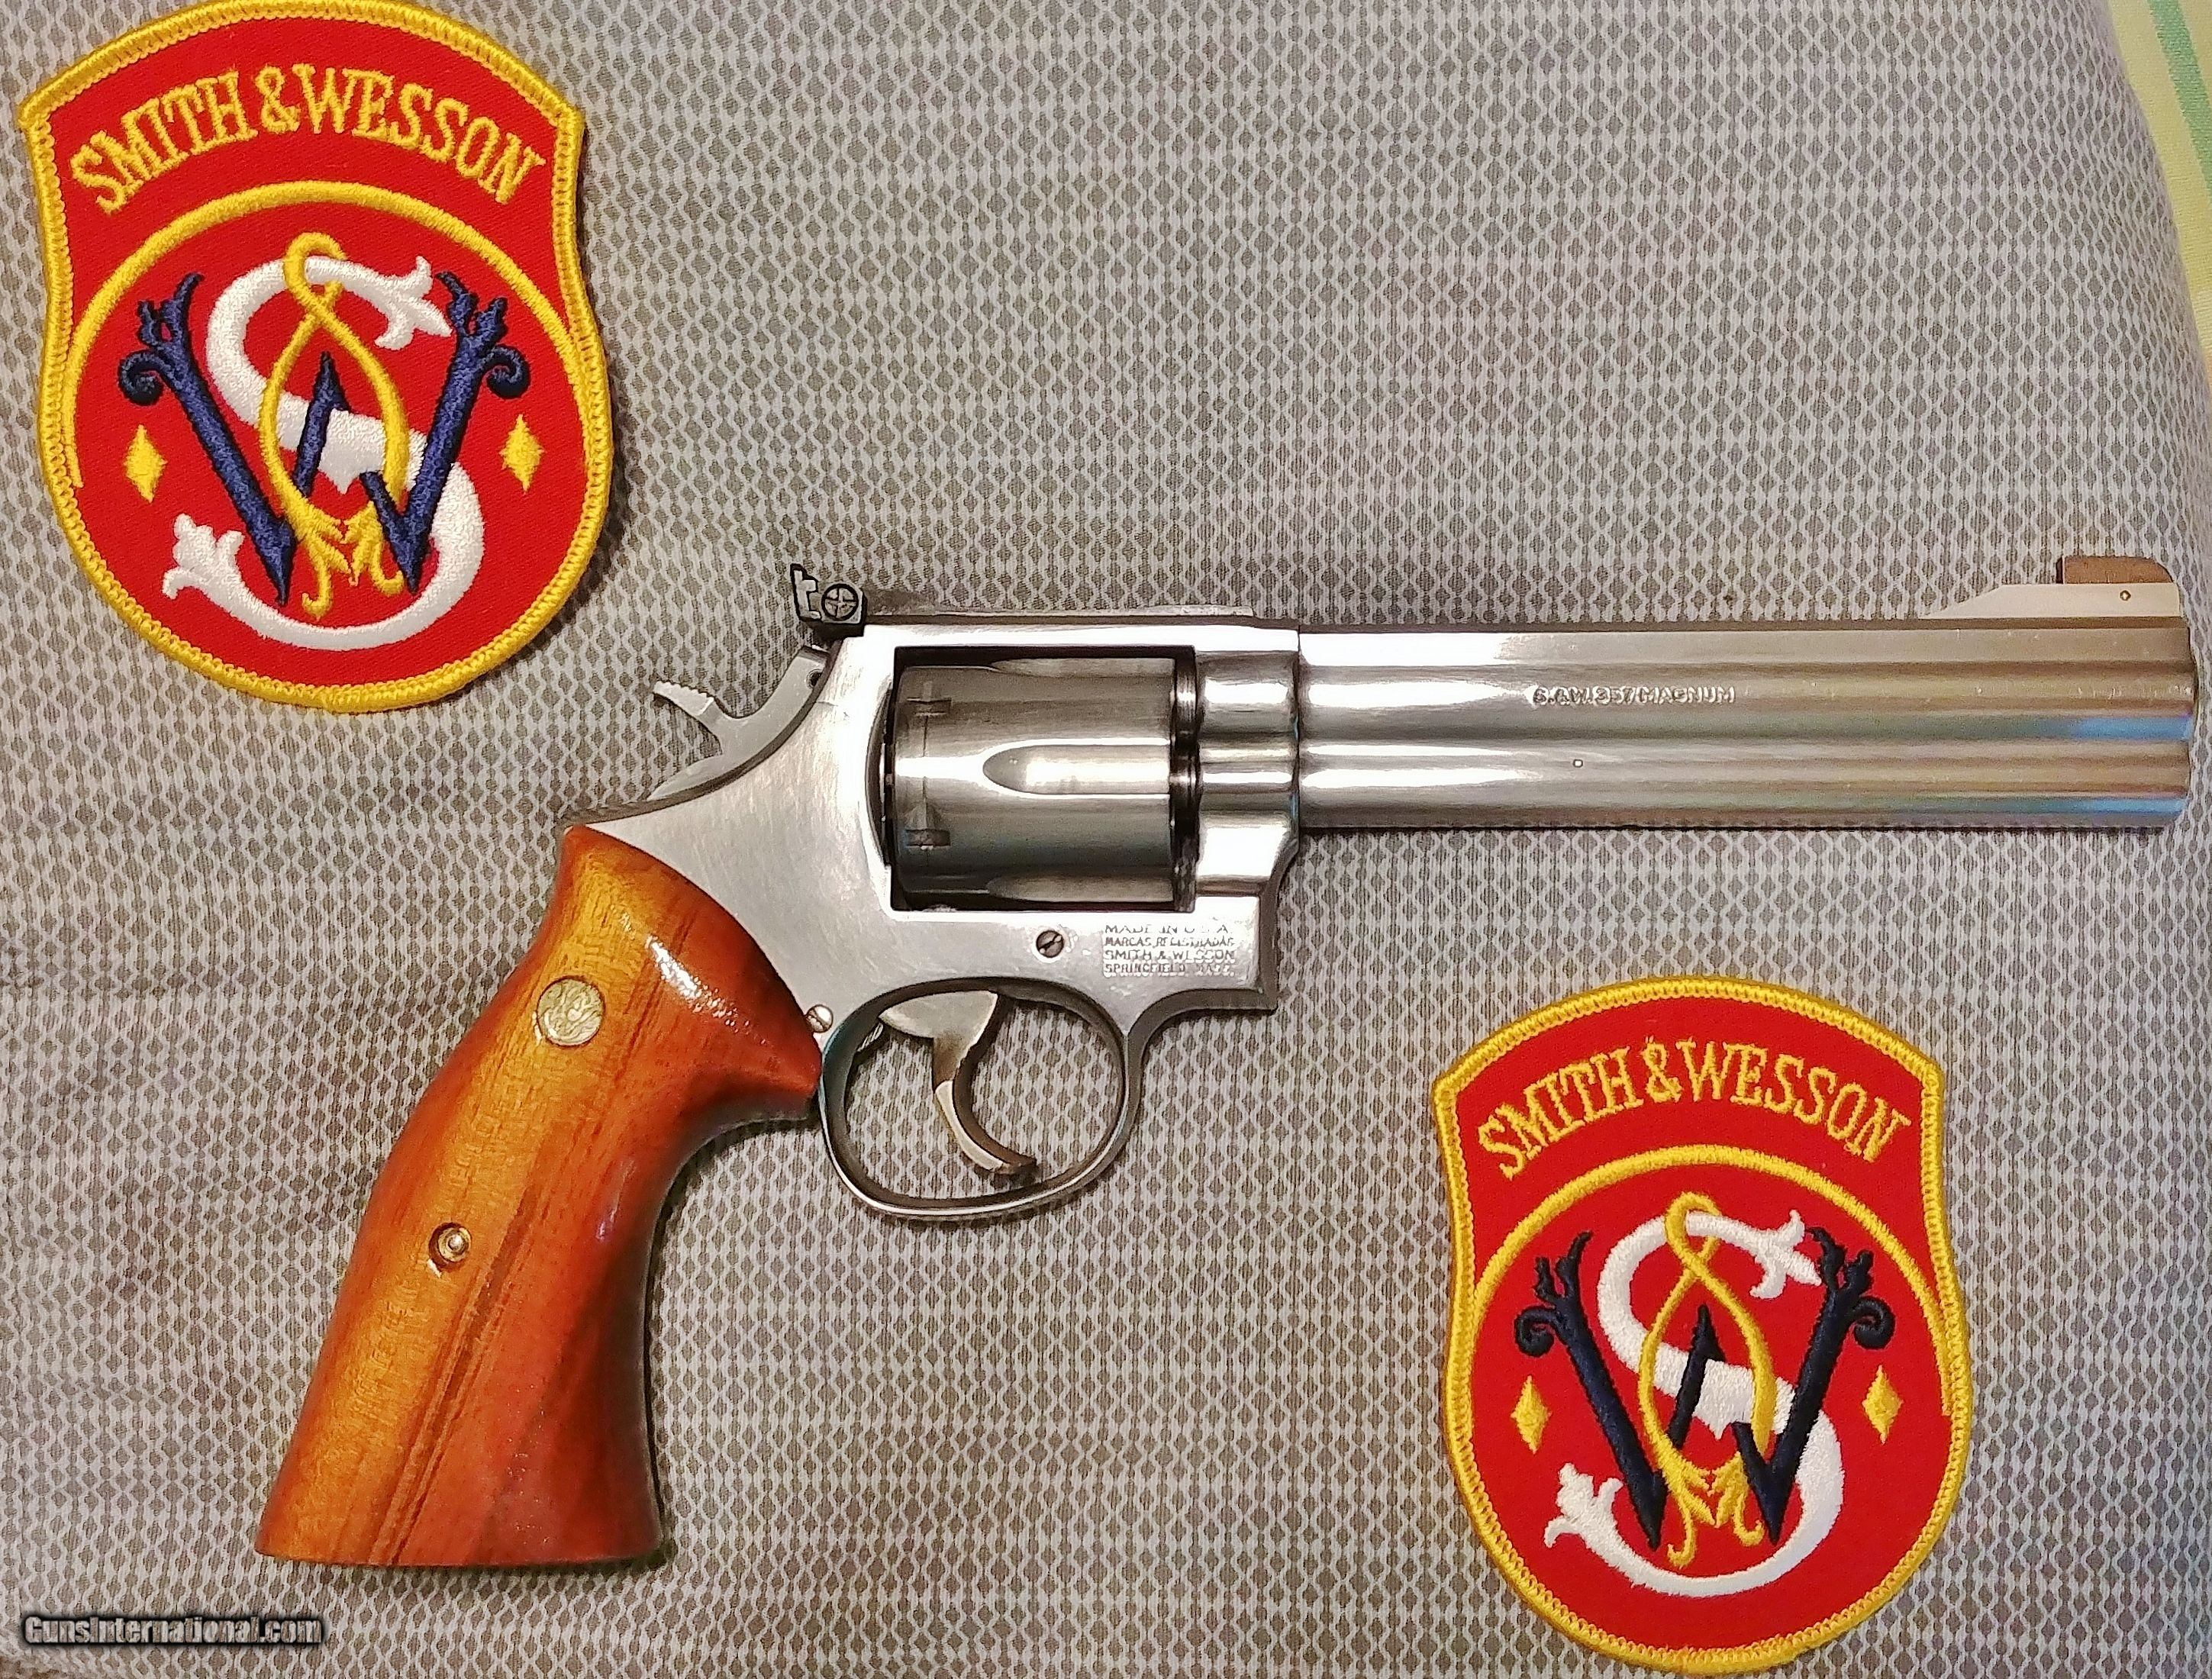 Smith Wesson Stainless Model 686 6 No Dash 357 Magnum W Case